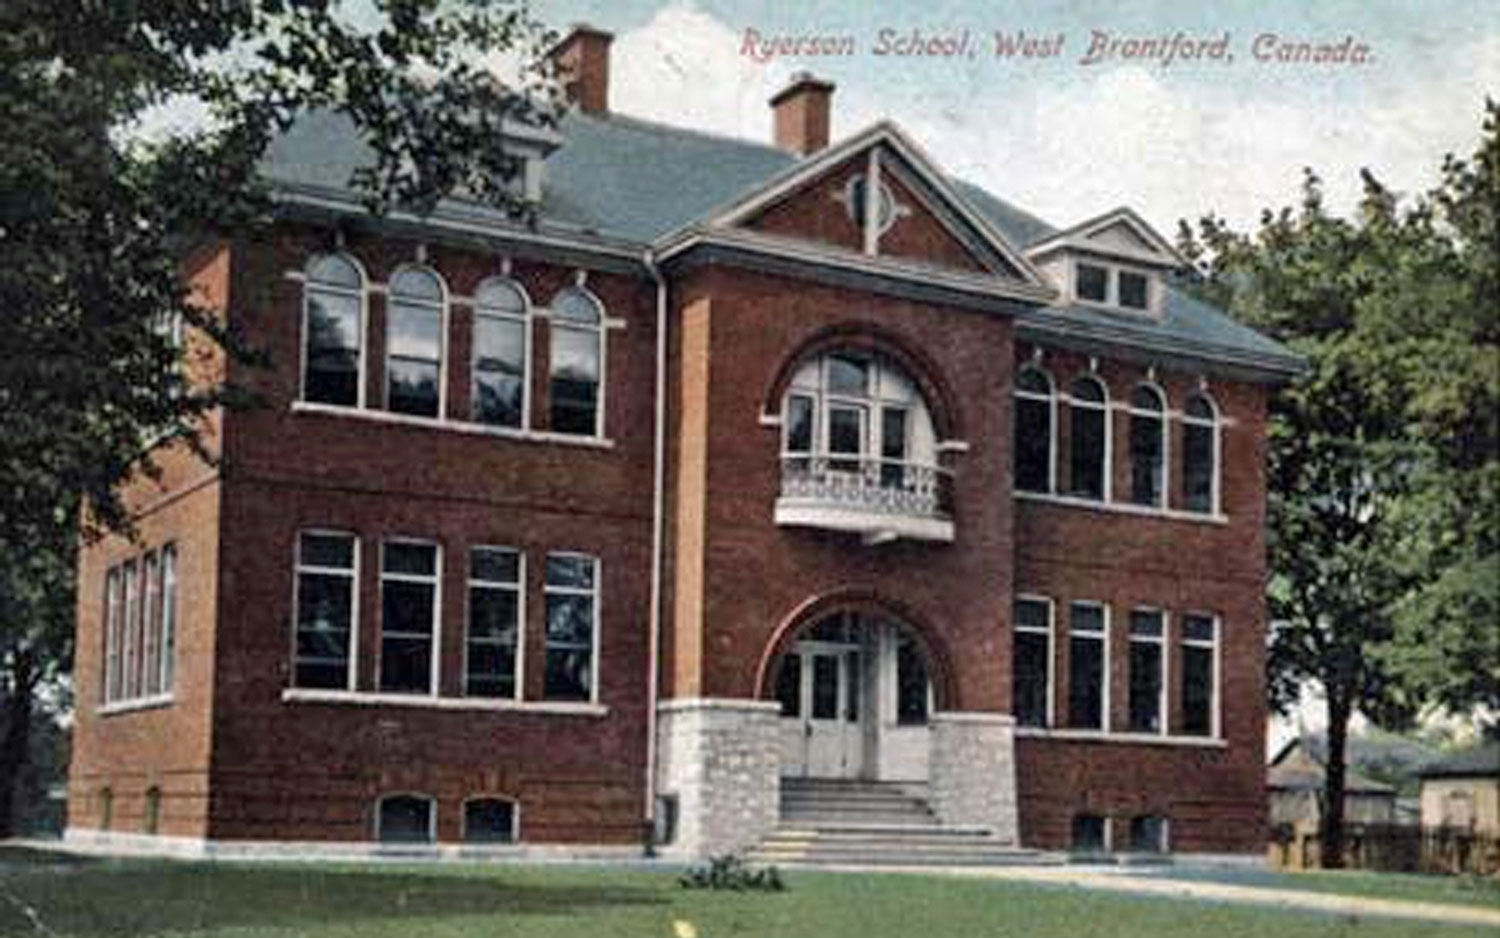 Ryerson School  Image courtesy of the Brant Historical Society